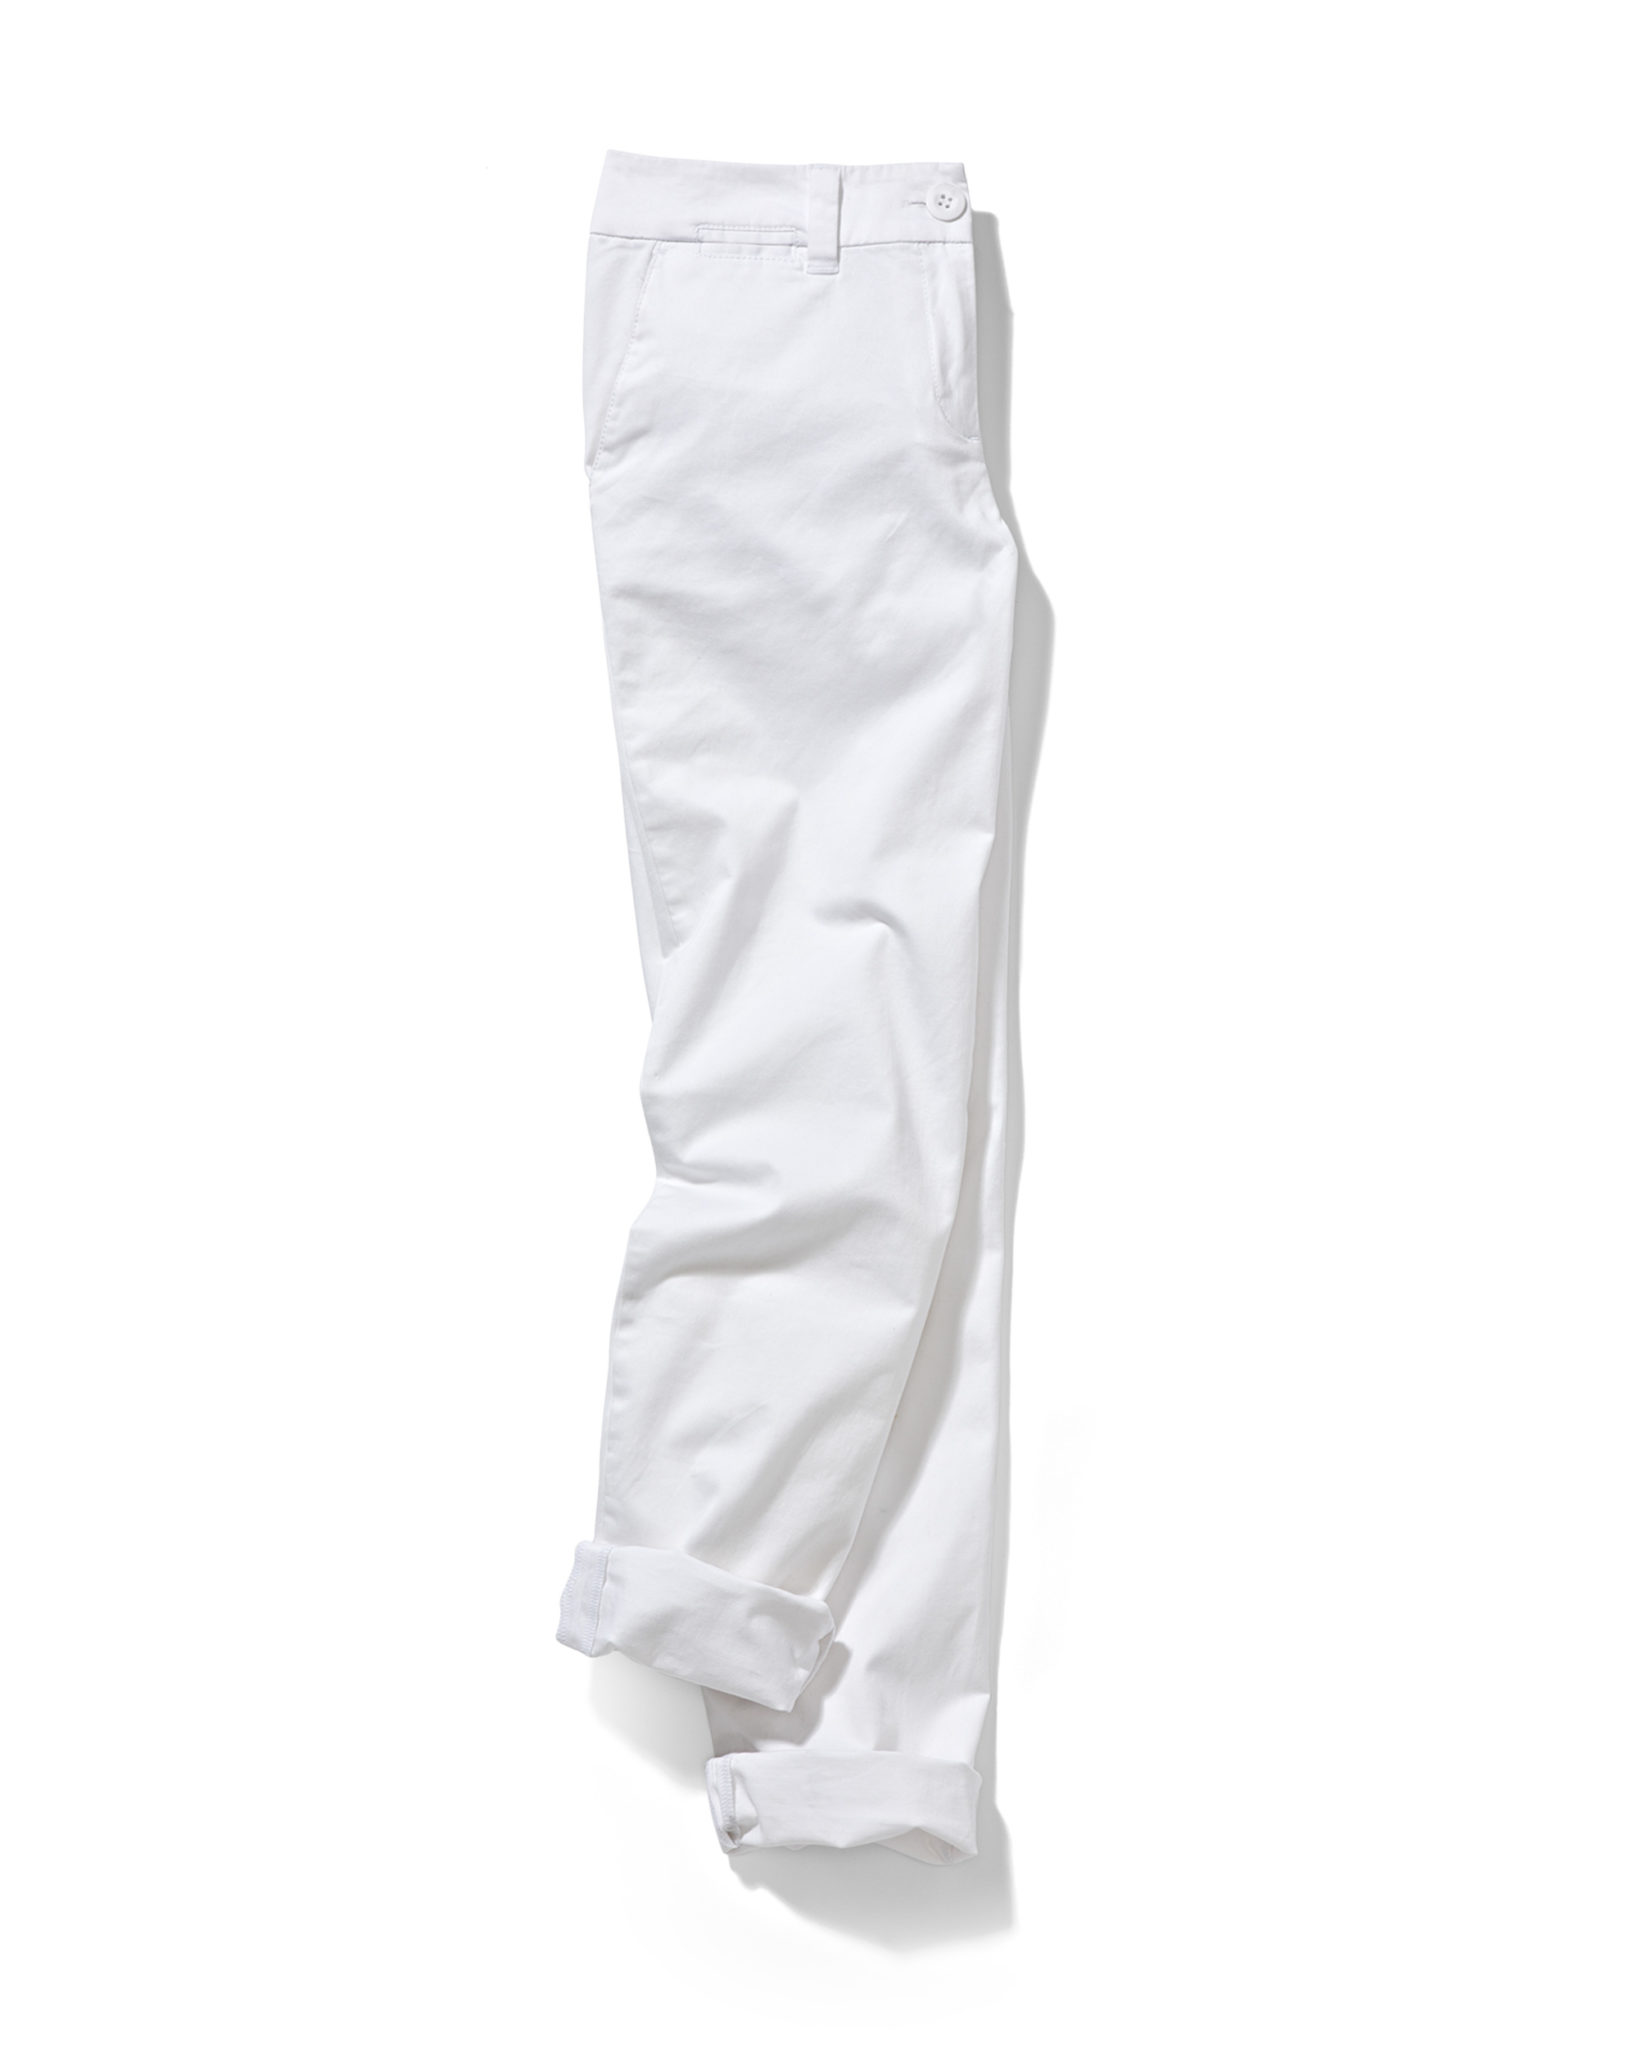 a marketing photograph of white pants with soft styling on white